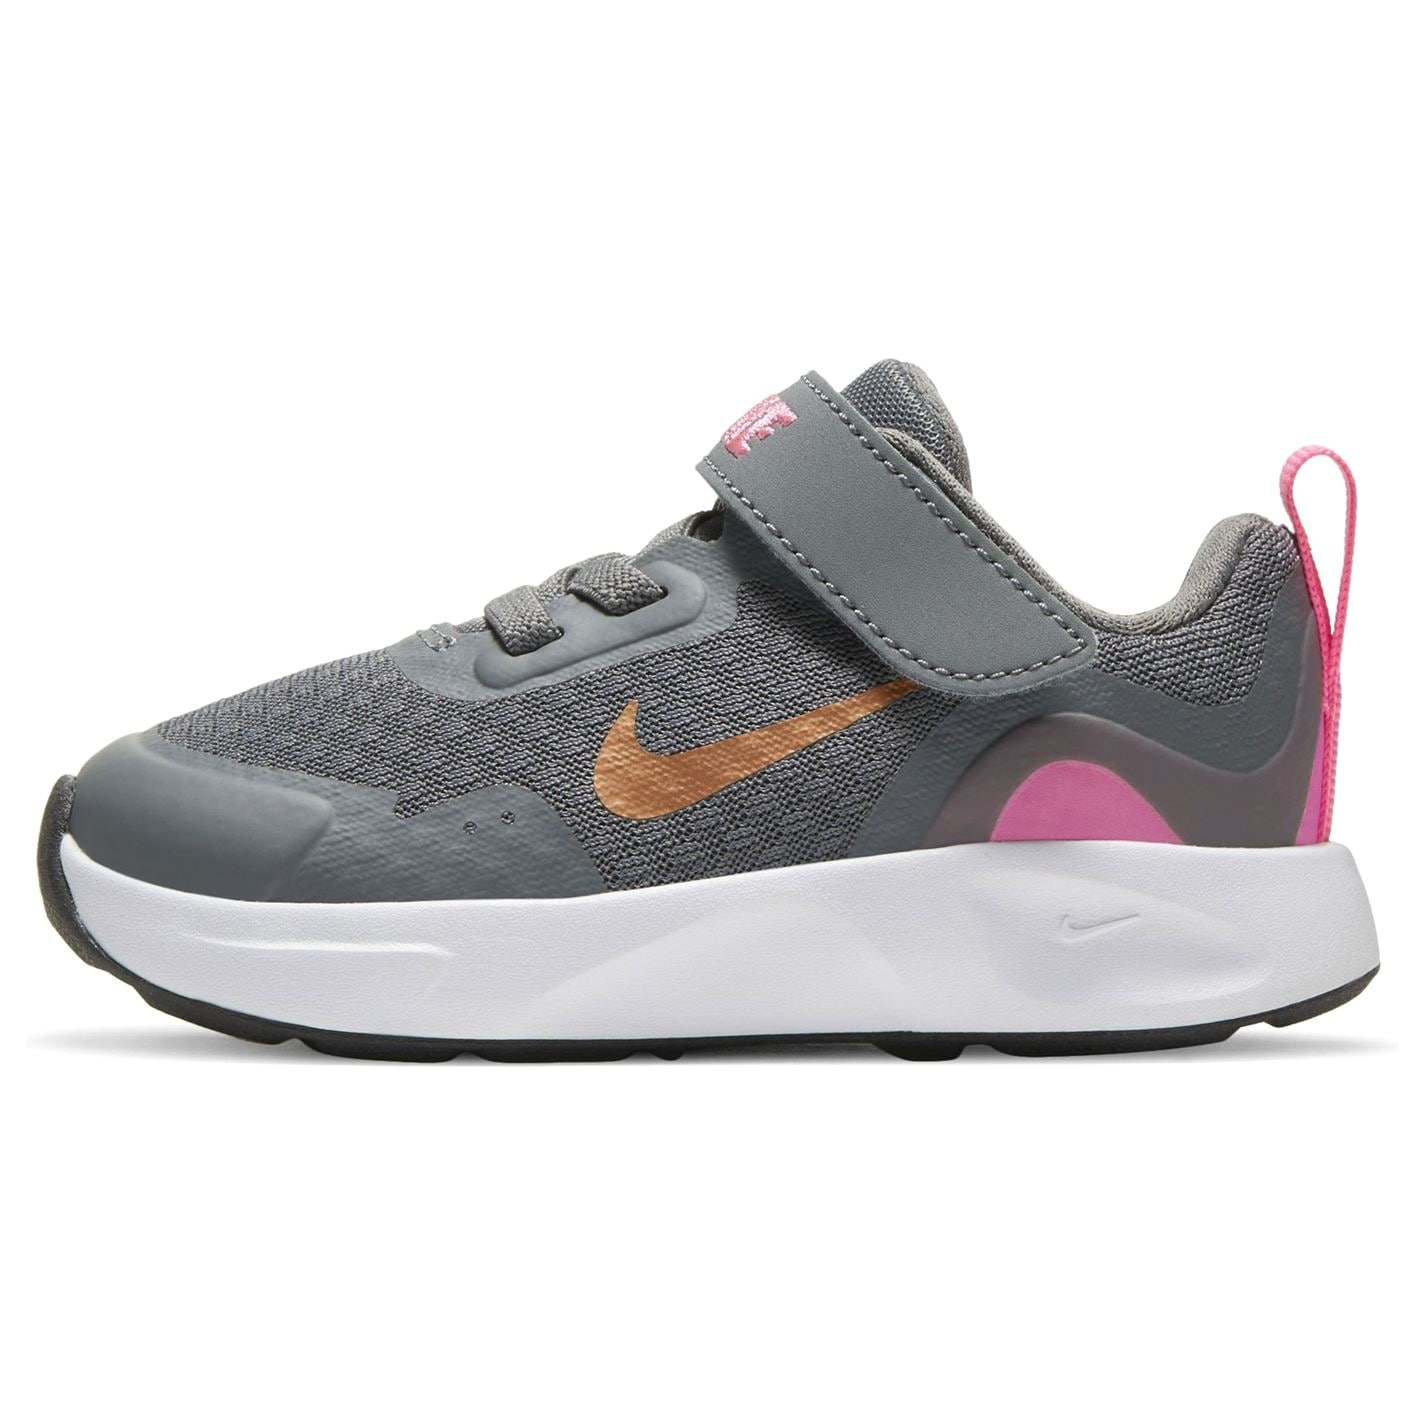 Nike Wear All Day Baby/Toddler Trainers Grey/Met/Pink